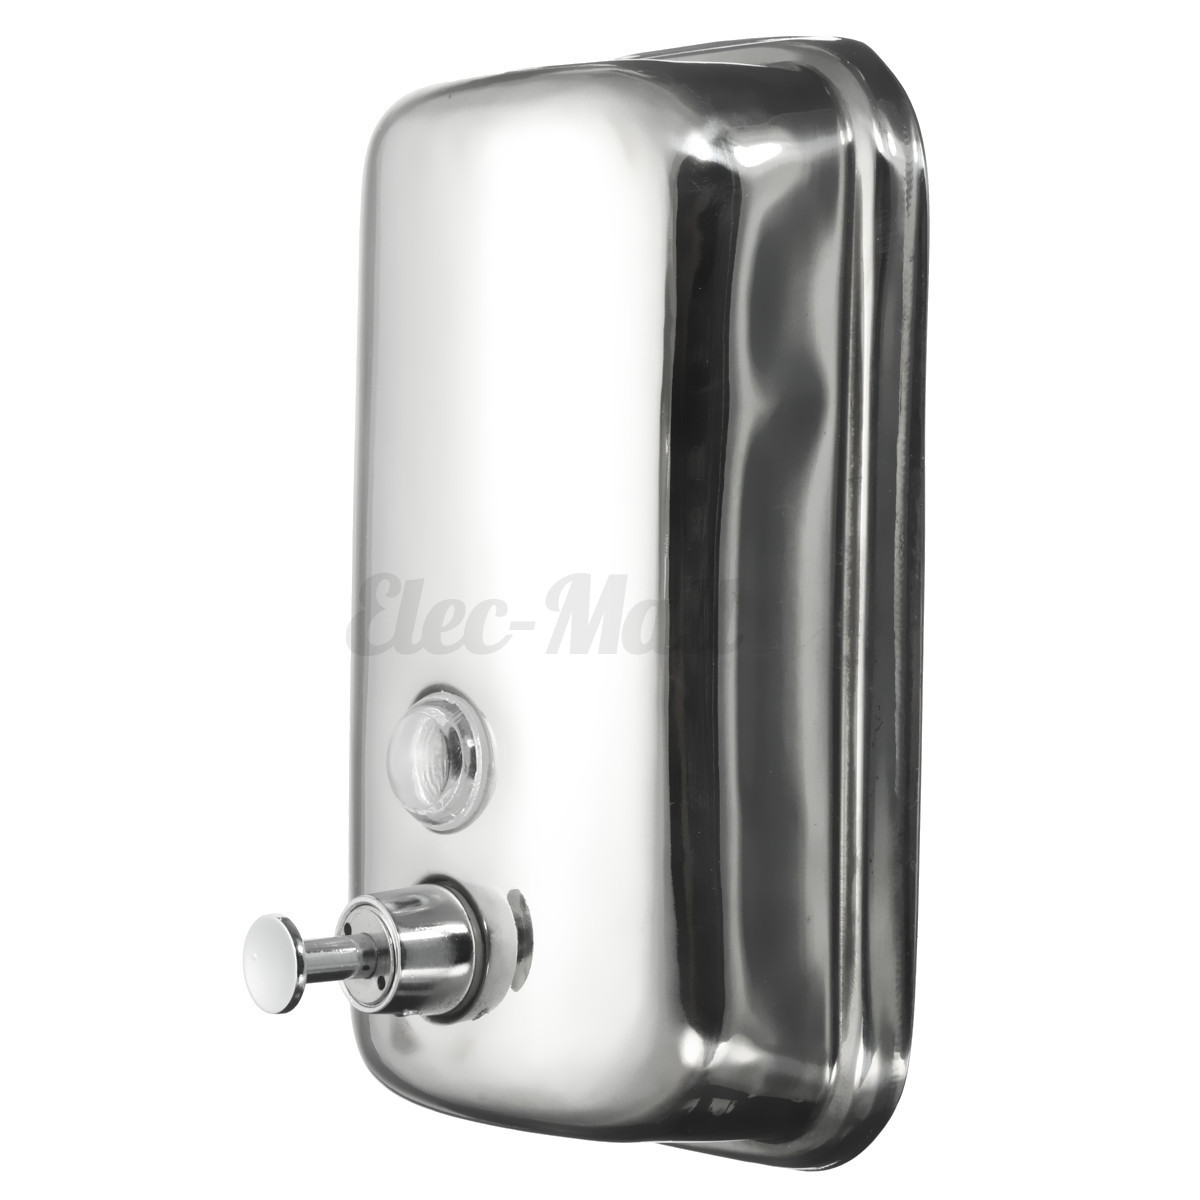 Metal Soap Dispenser Pump Stainless Steel Wall Mount Pump Action Liquid Shampoo Box